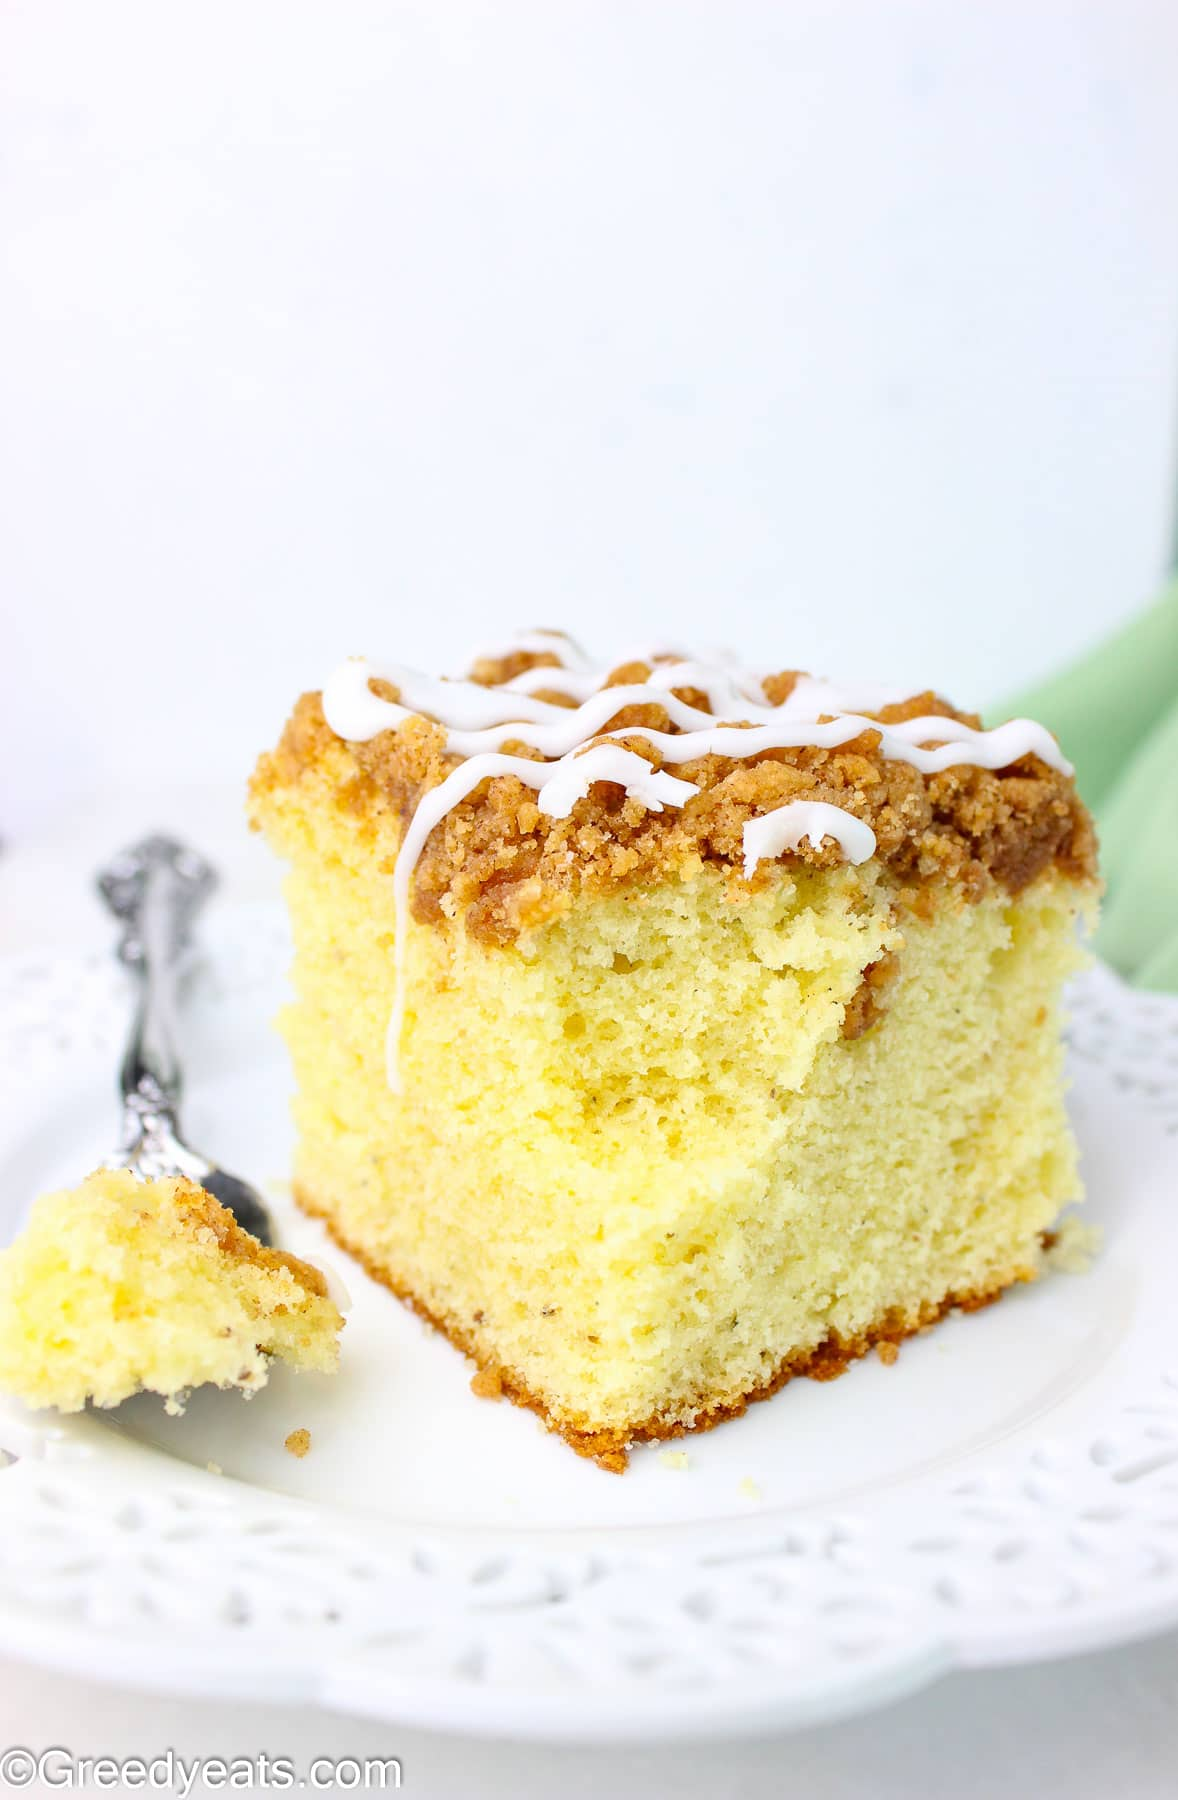 Easy and soft coffee Cake made with sour cream topped with cinnamon streusel topping